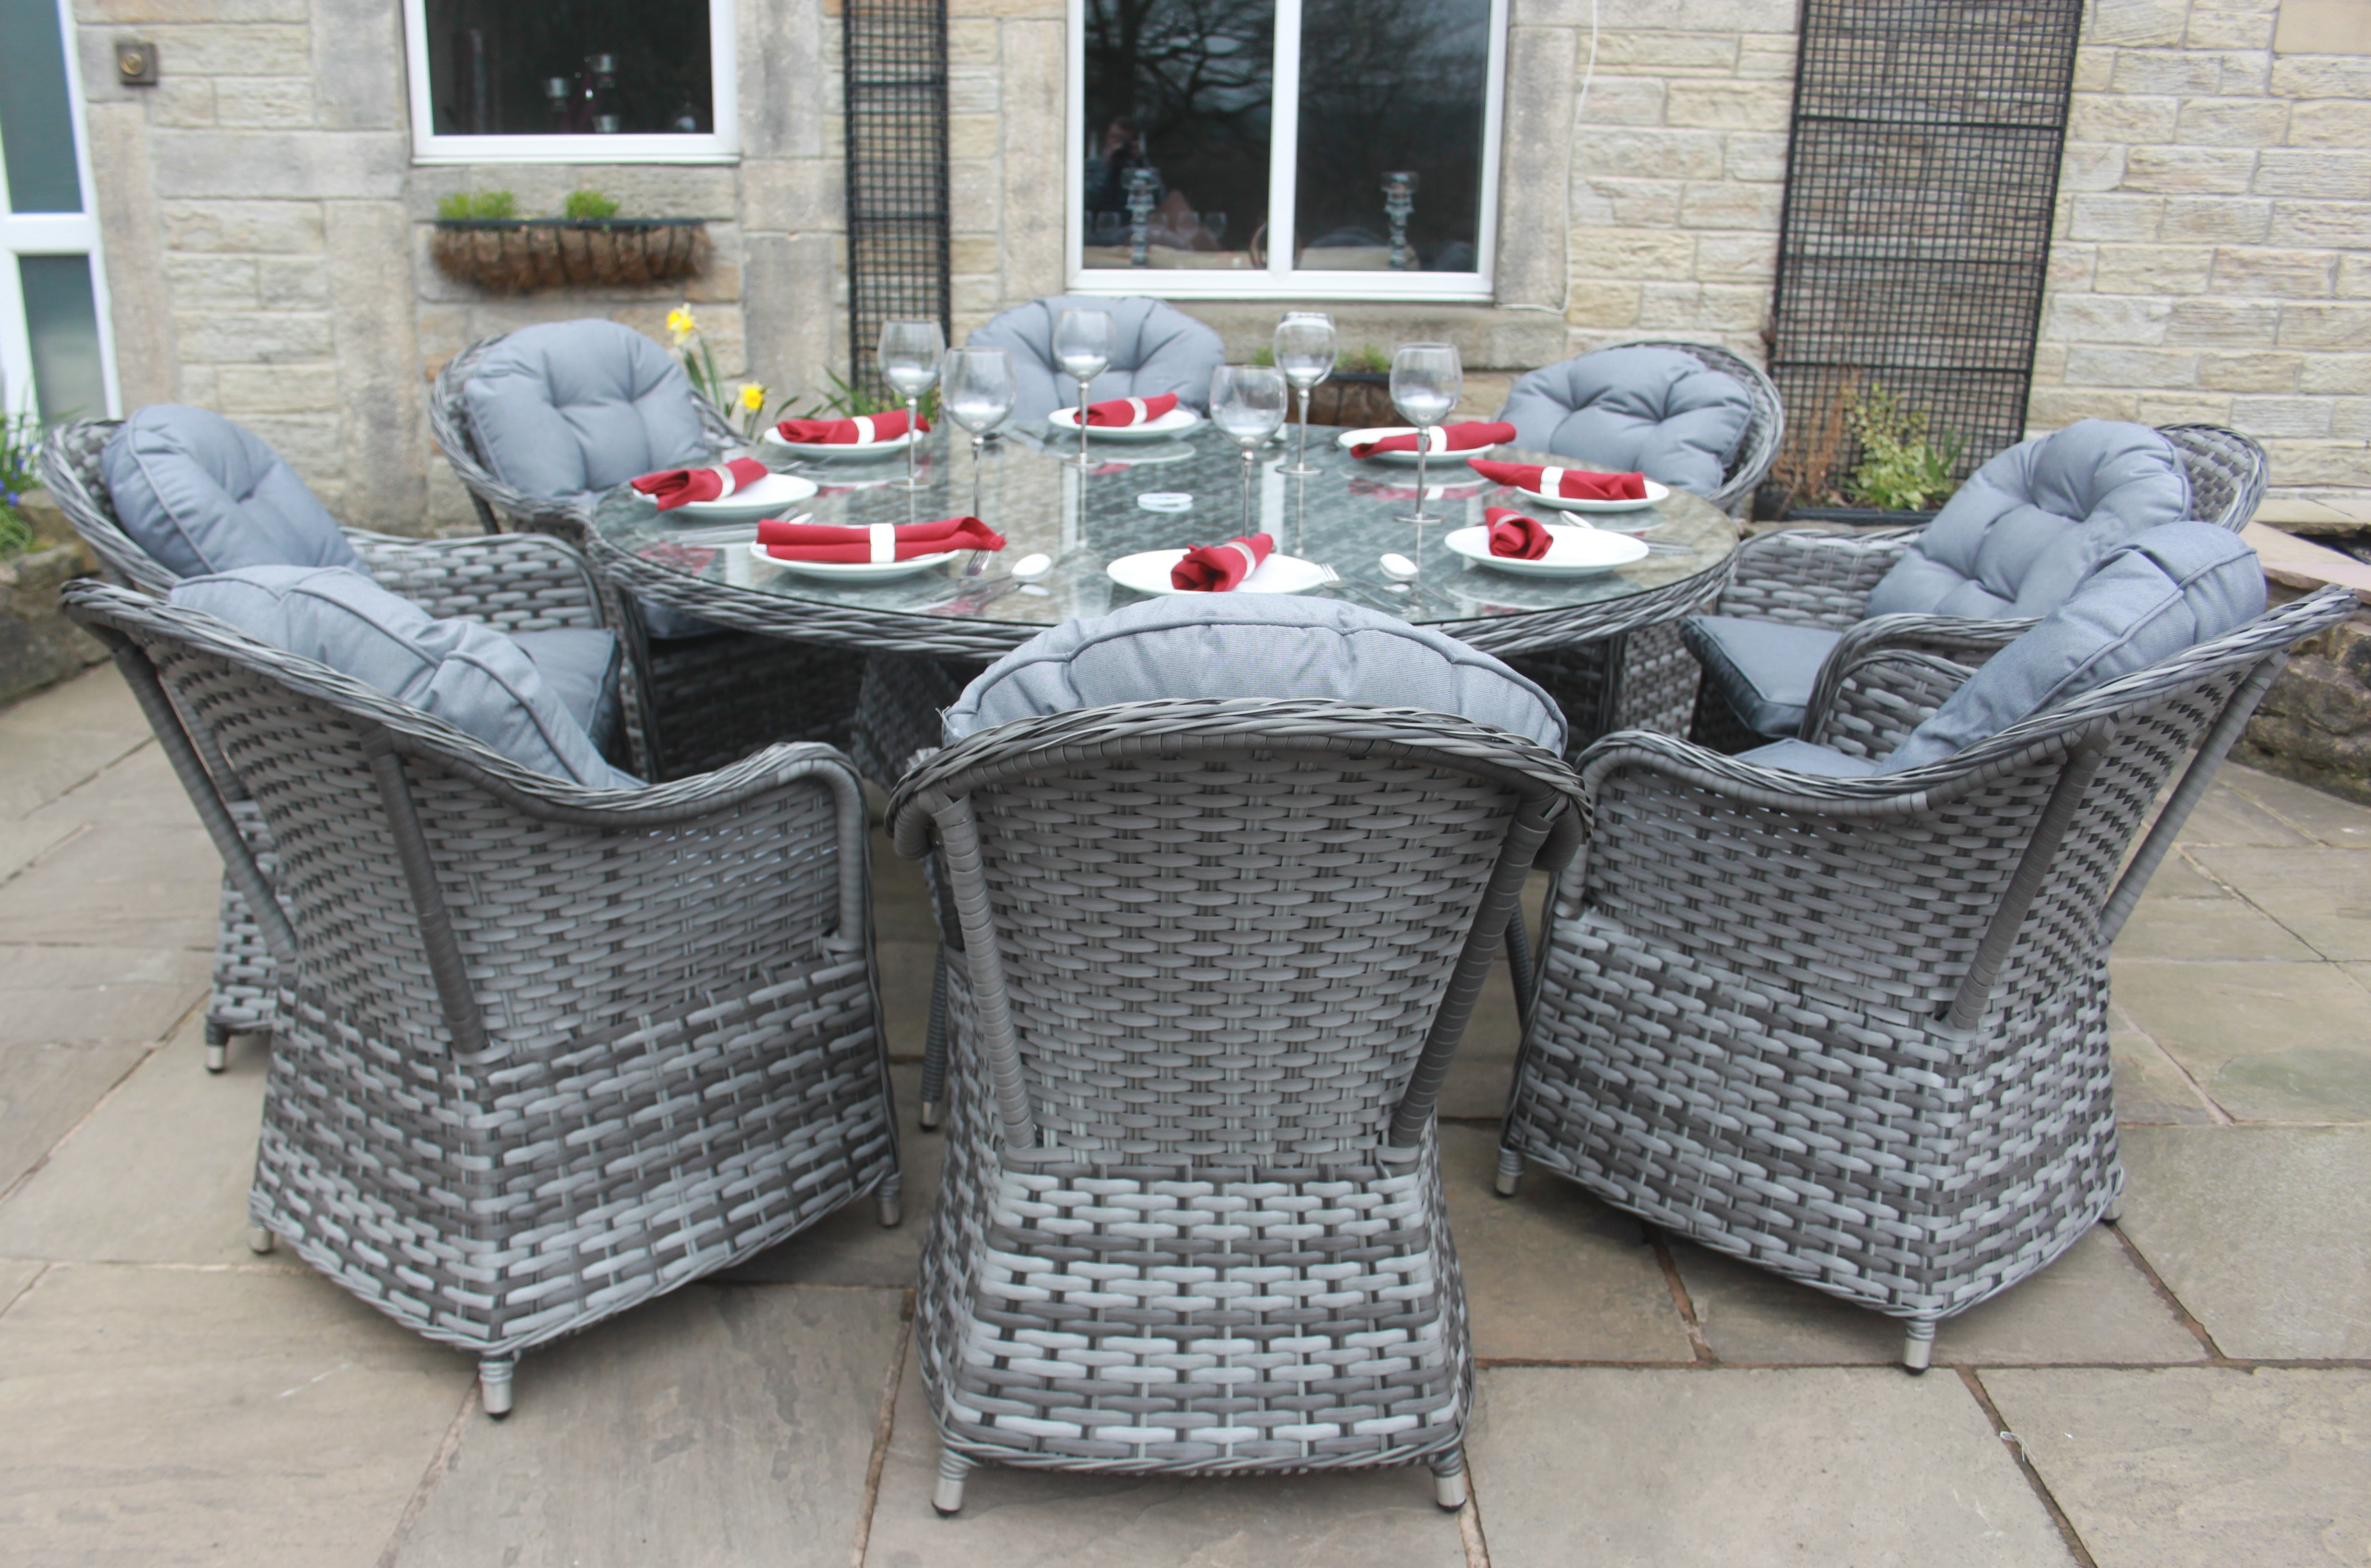 Luxury grey rattan garden furniture 8 seat round dining set without parasol